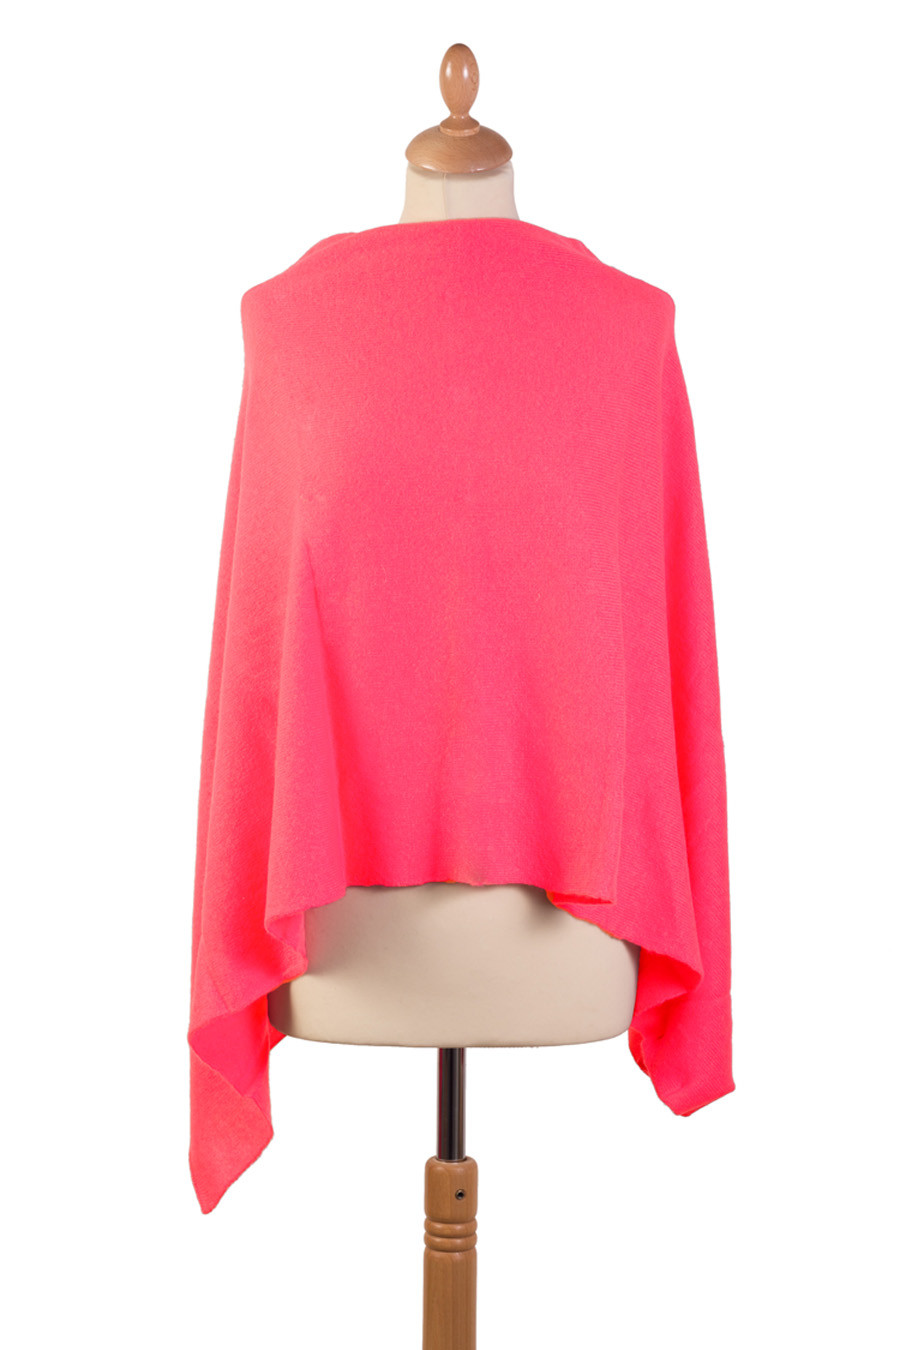 Poncho cachemire ORPHEE  rose orchidée